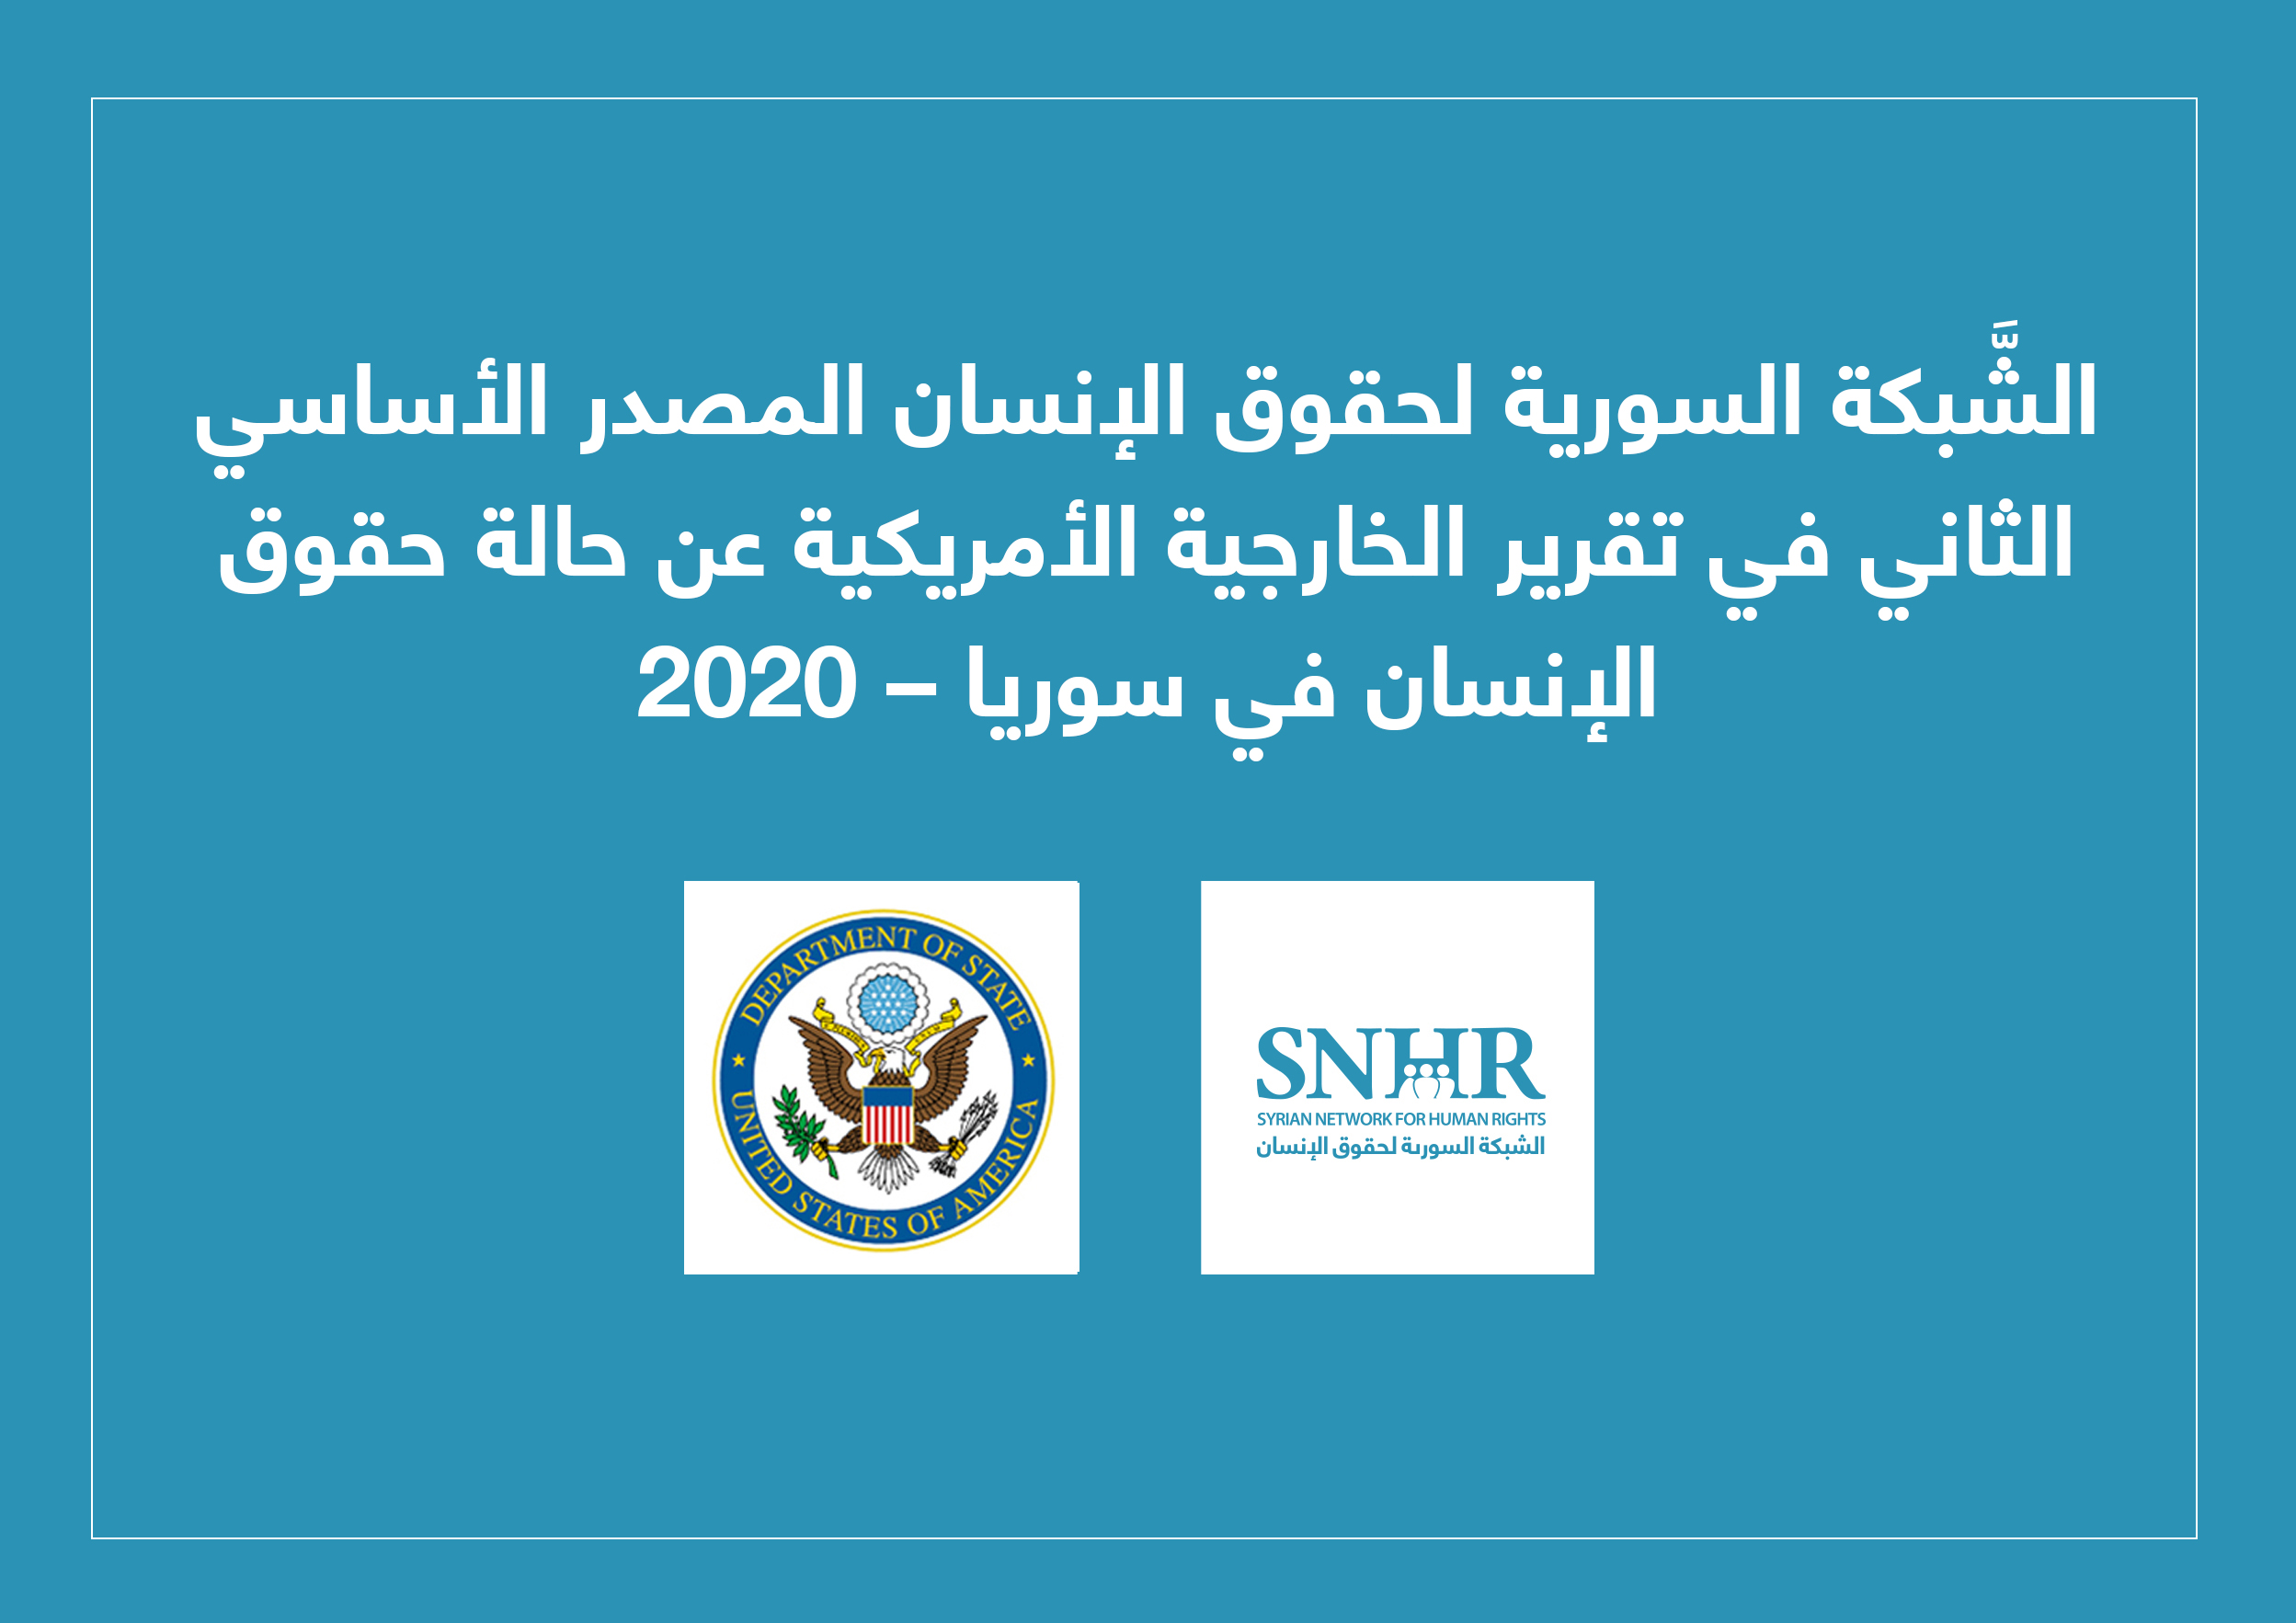 SNHR Is the Second Most Cited Source in the US Department of State's Report on the Human Rights Situation in Syria – 2020